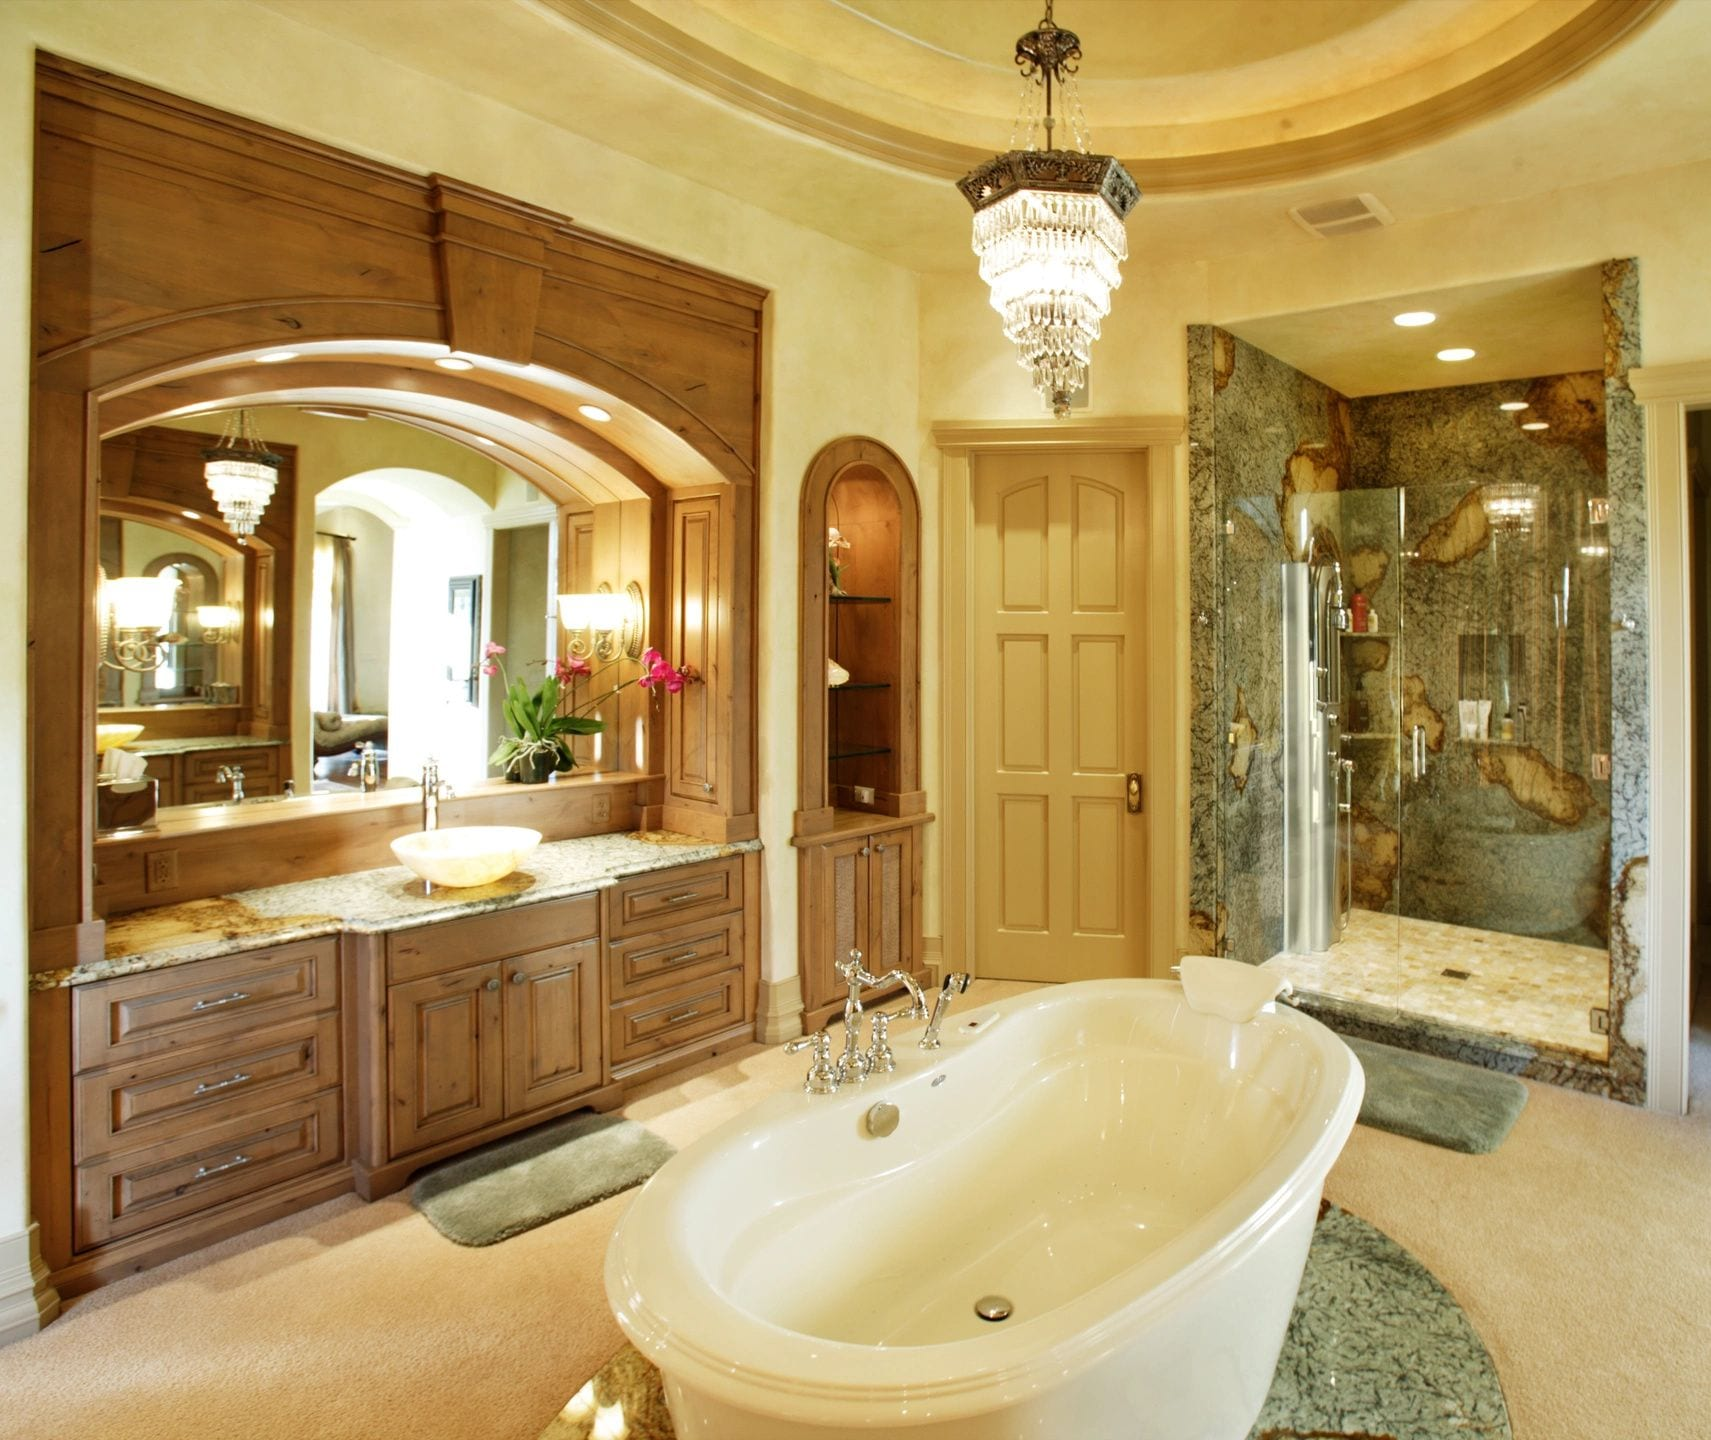 Sophisticated bathroom space with elegant lighting and well-planned electrical systems